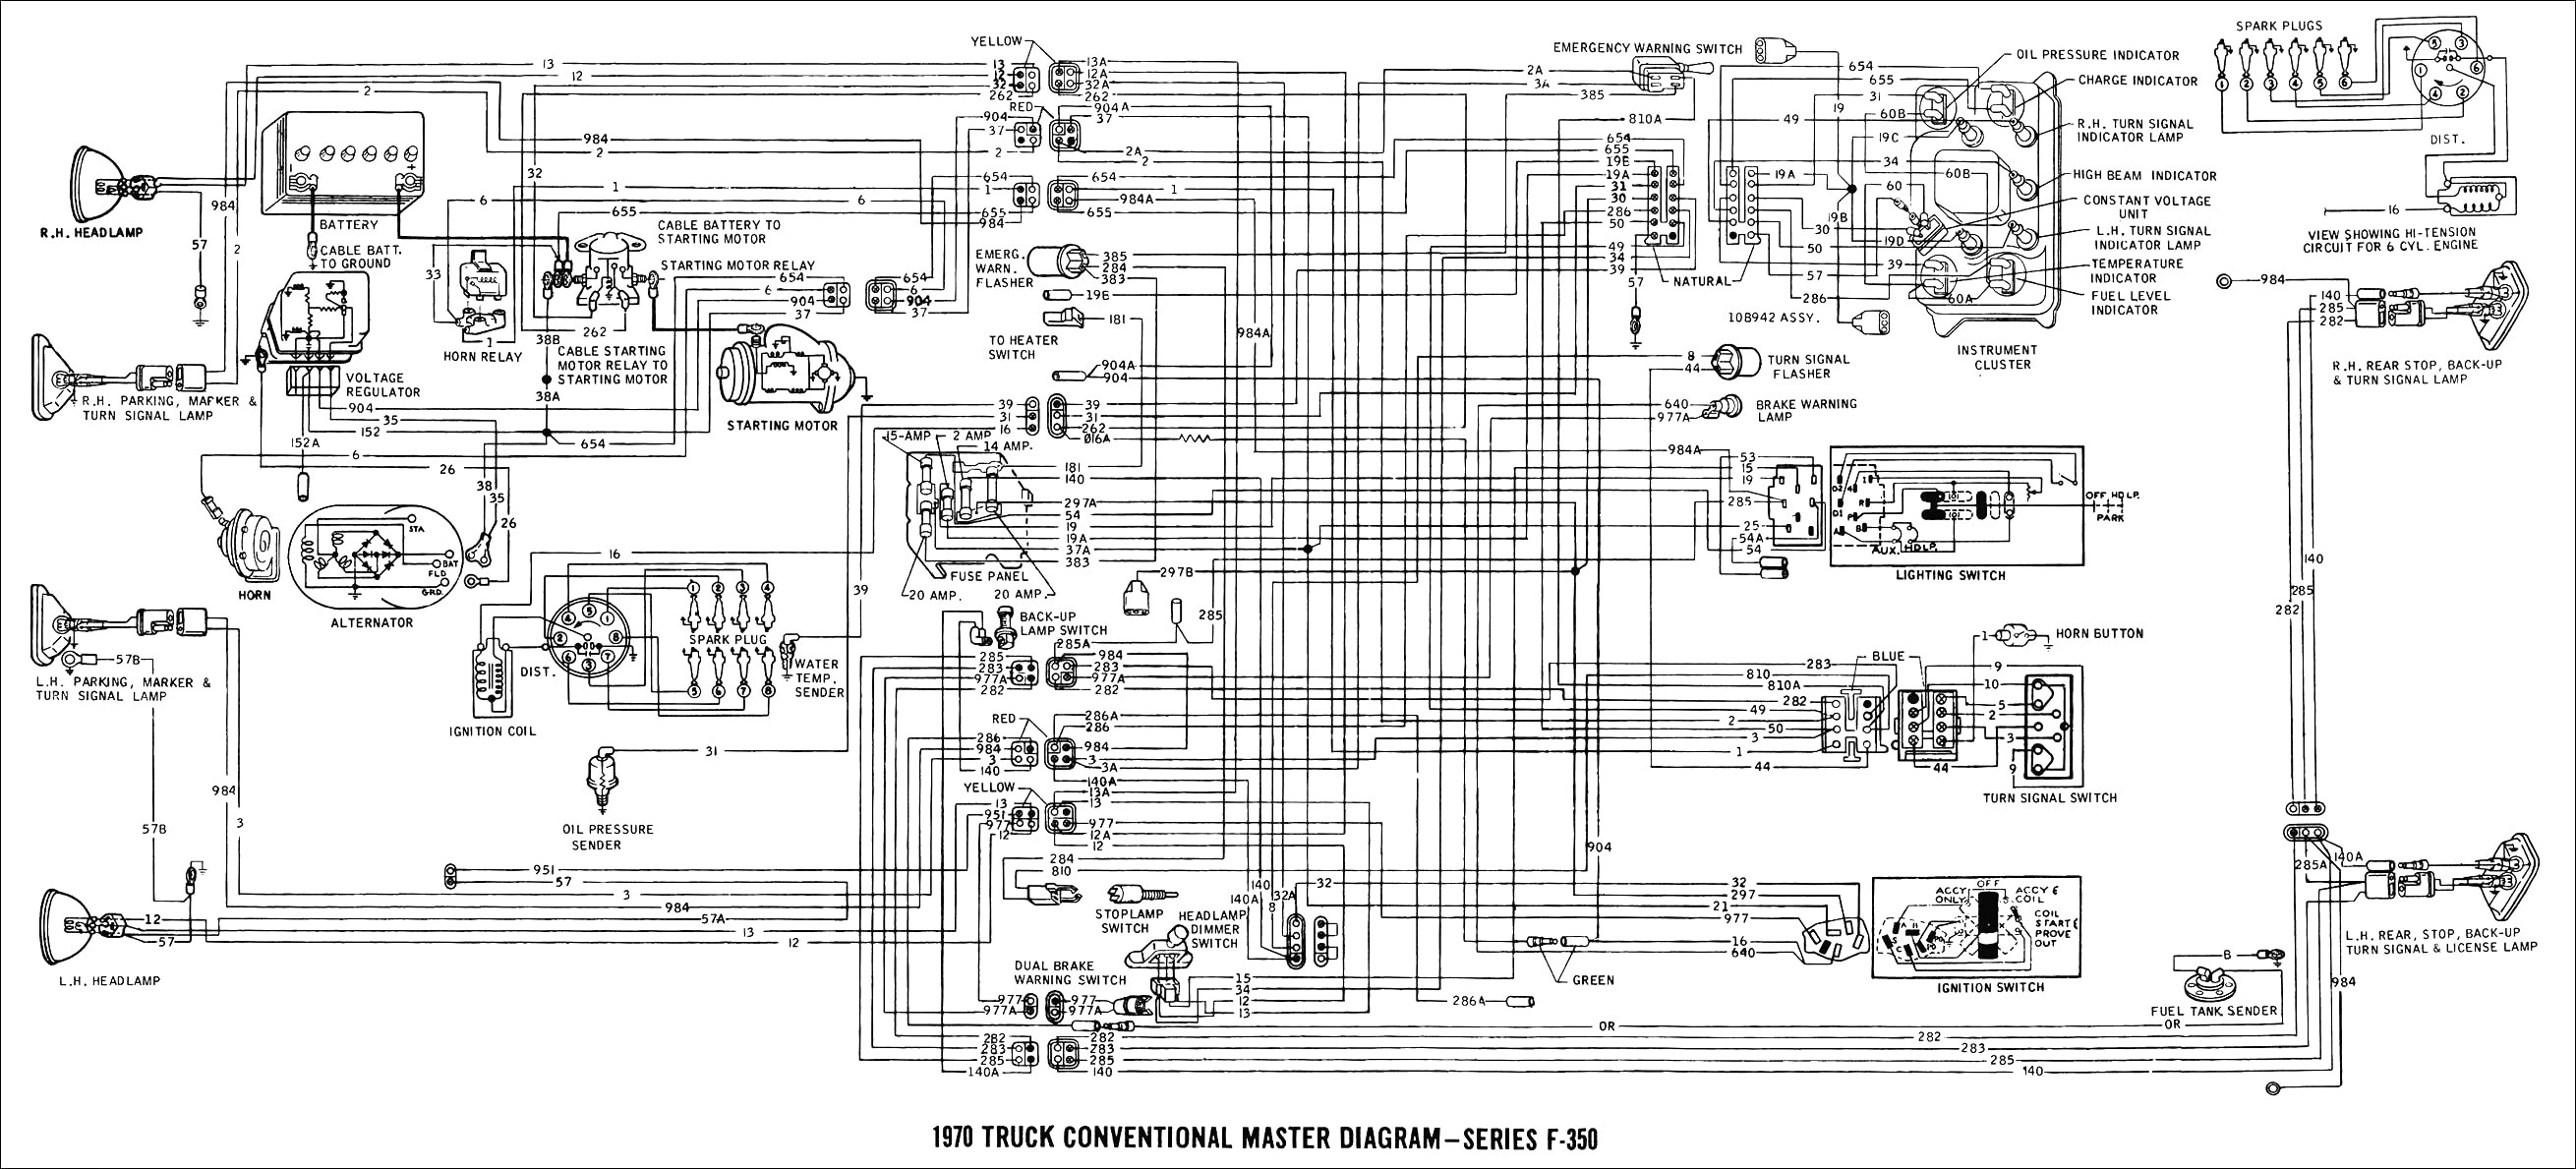 Wiring Diagram For 1996 Ford Ranger Posts. 2003 Ford Ranger Wiring Diagram Awesome For 1996 Audi A4. Ford. 1995 Ford Ranger Wiring Schematic At Scoala.co